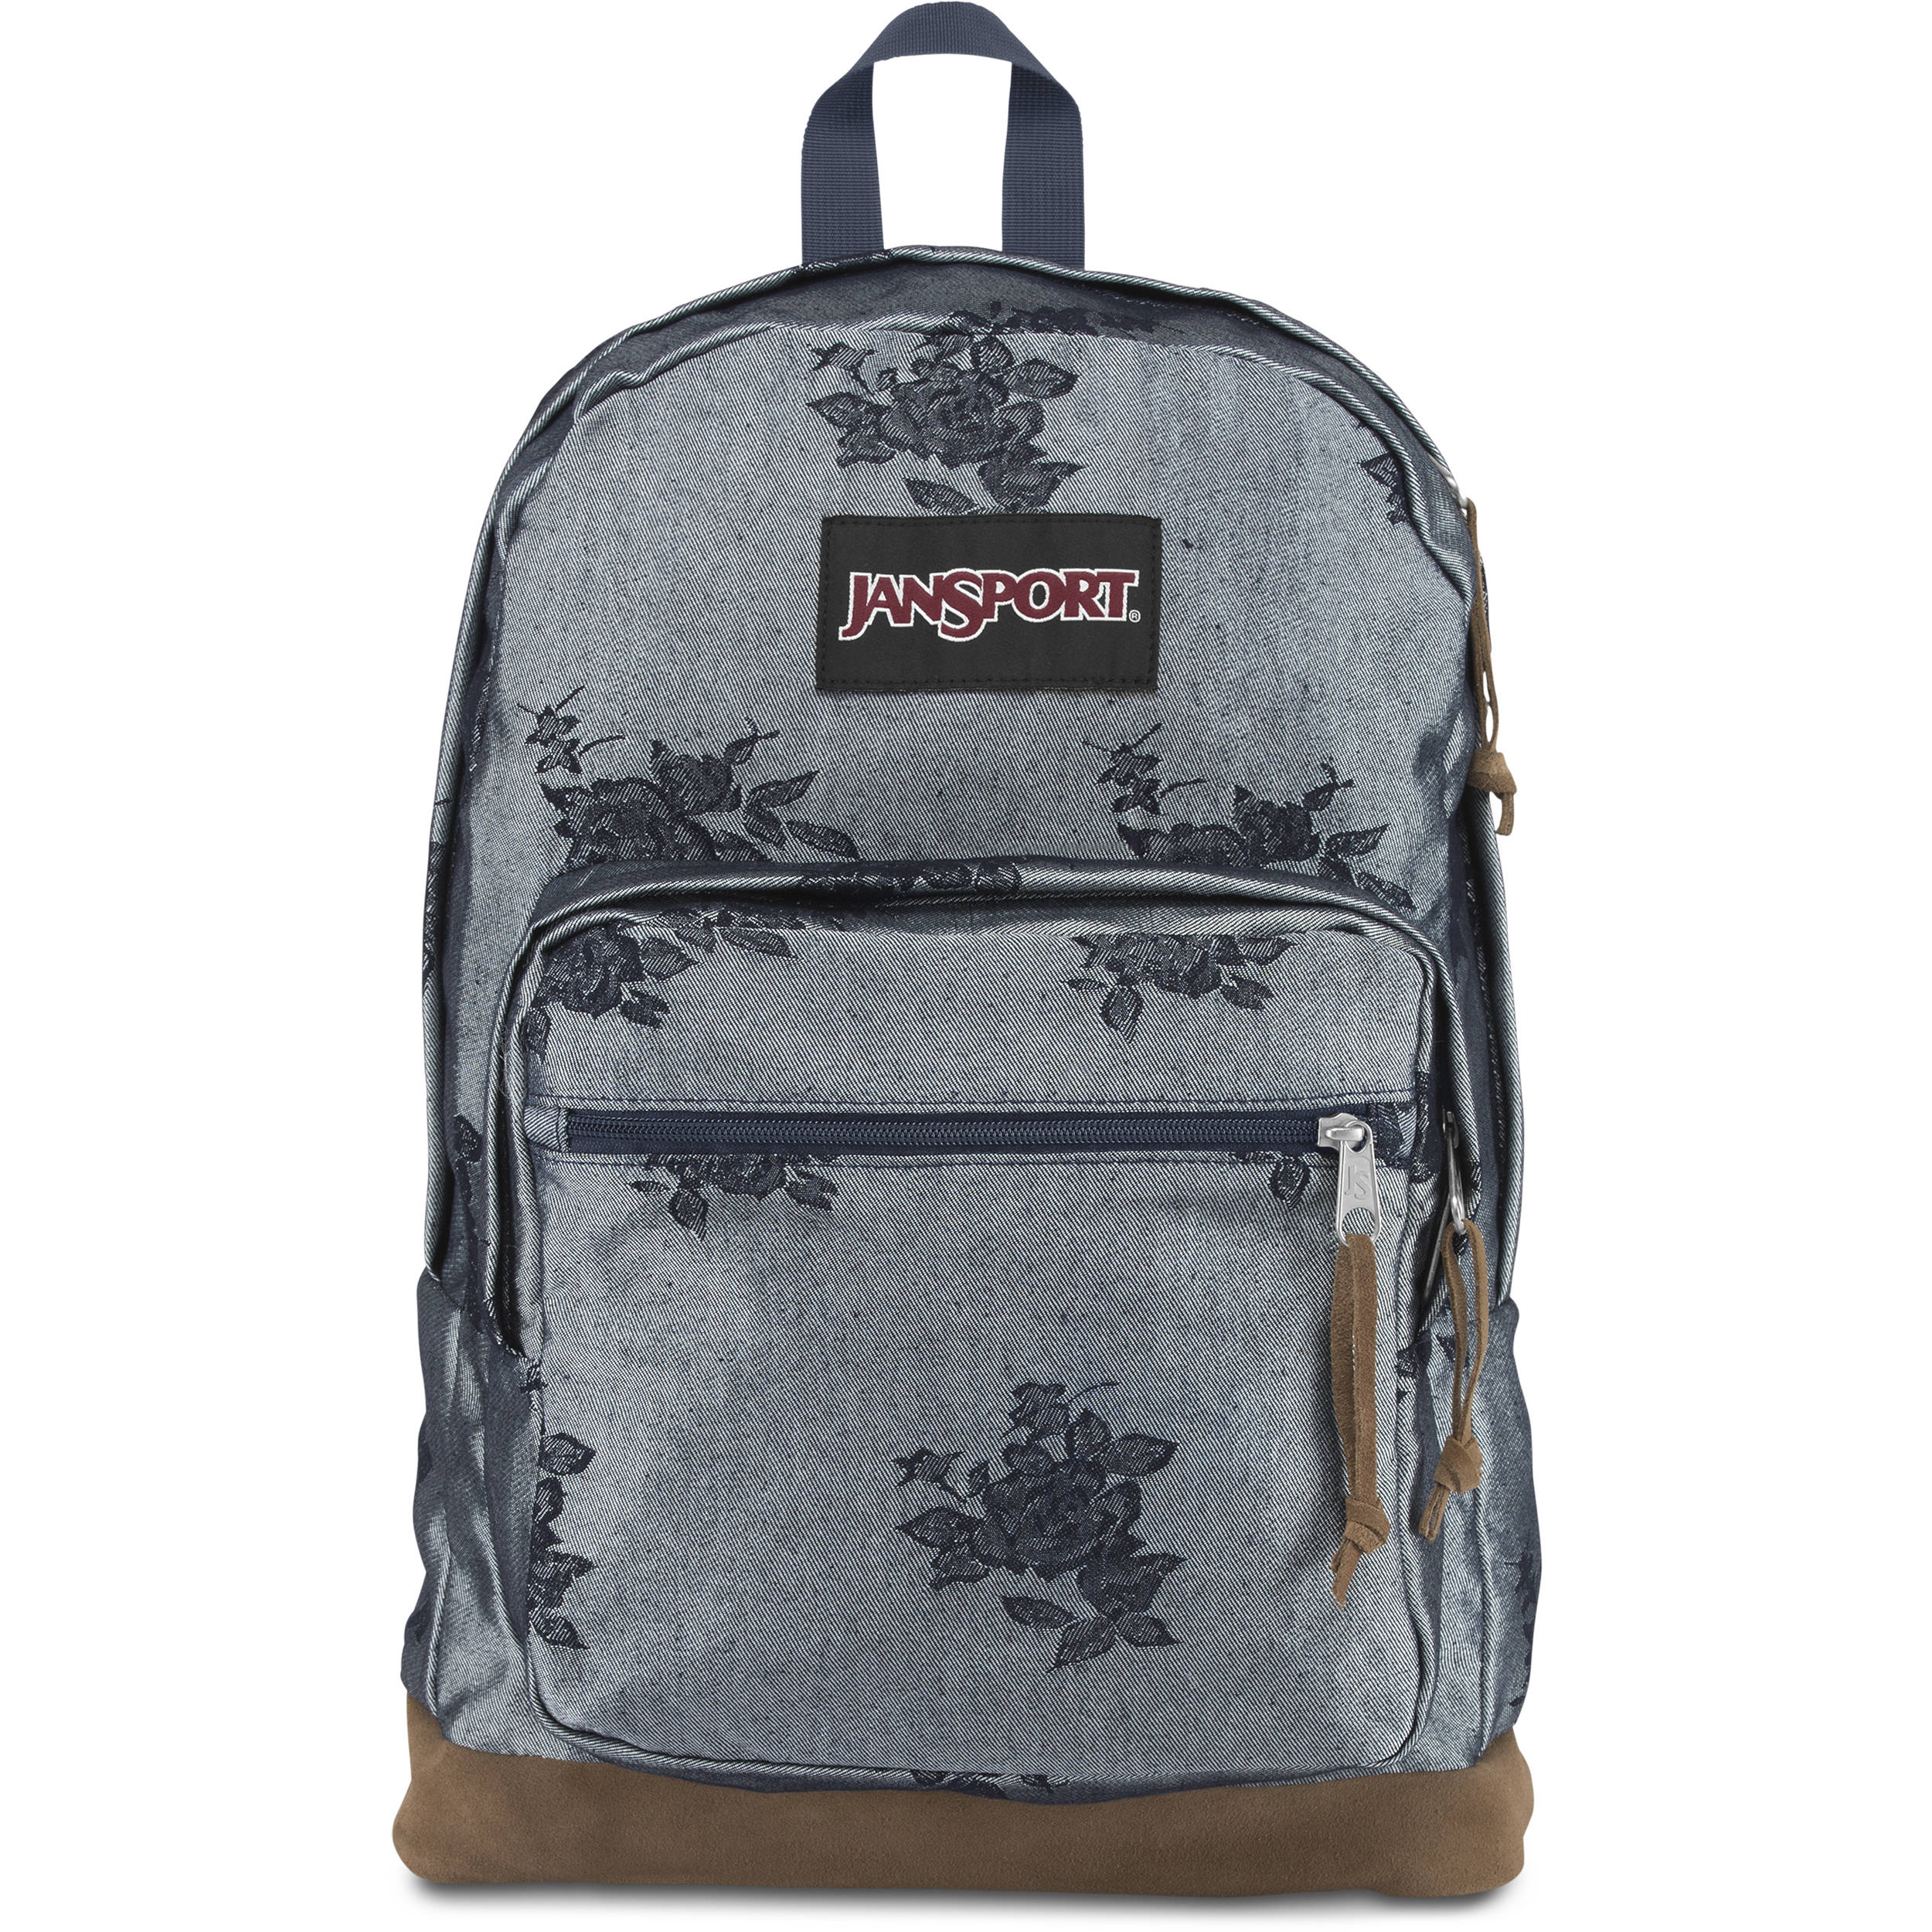 Class A Jansport Backpacks Philippines - Swiss Paralympic